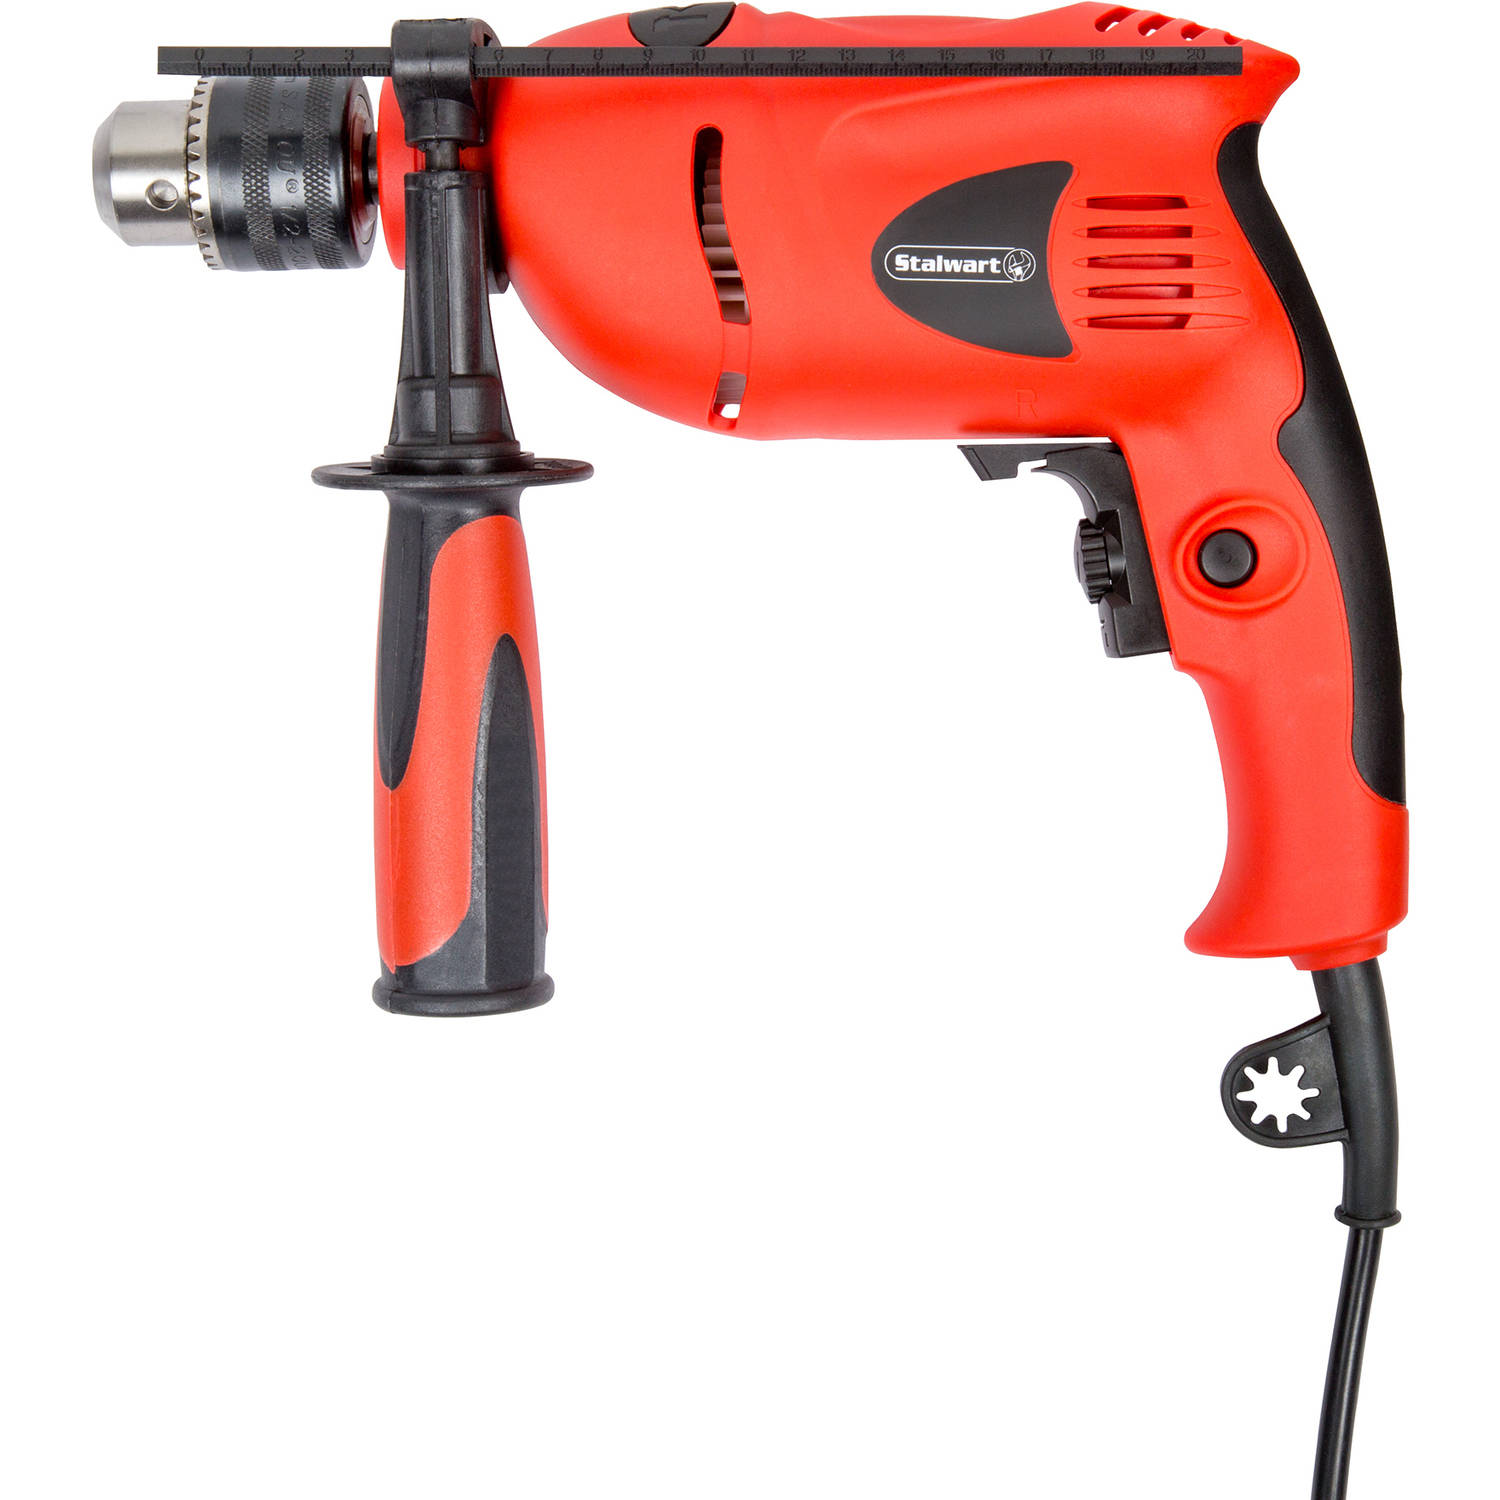 Stalwart 5.0 Amp 120V Variable Speed Hammer Drill, 1/2""